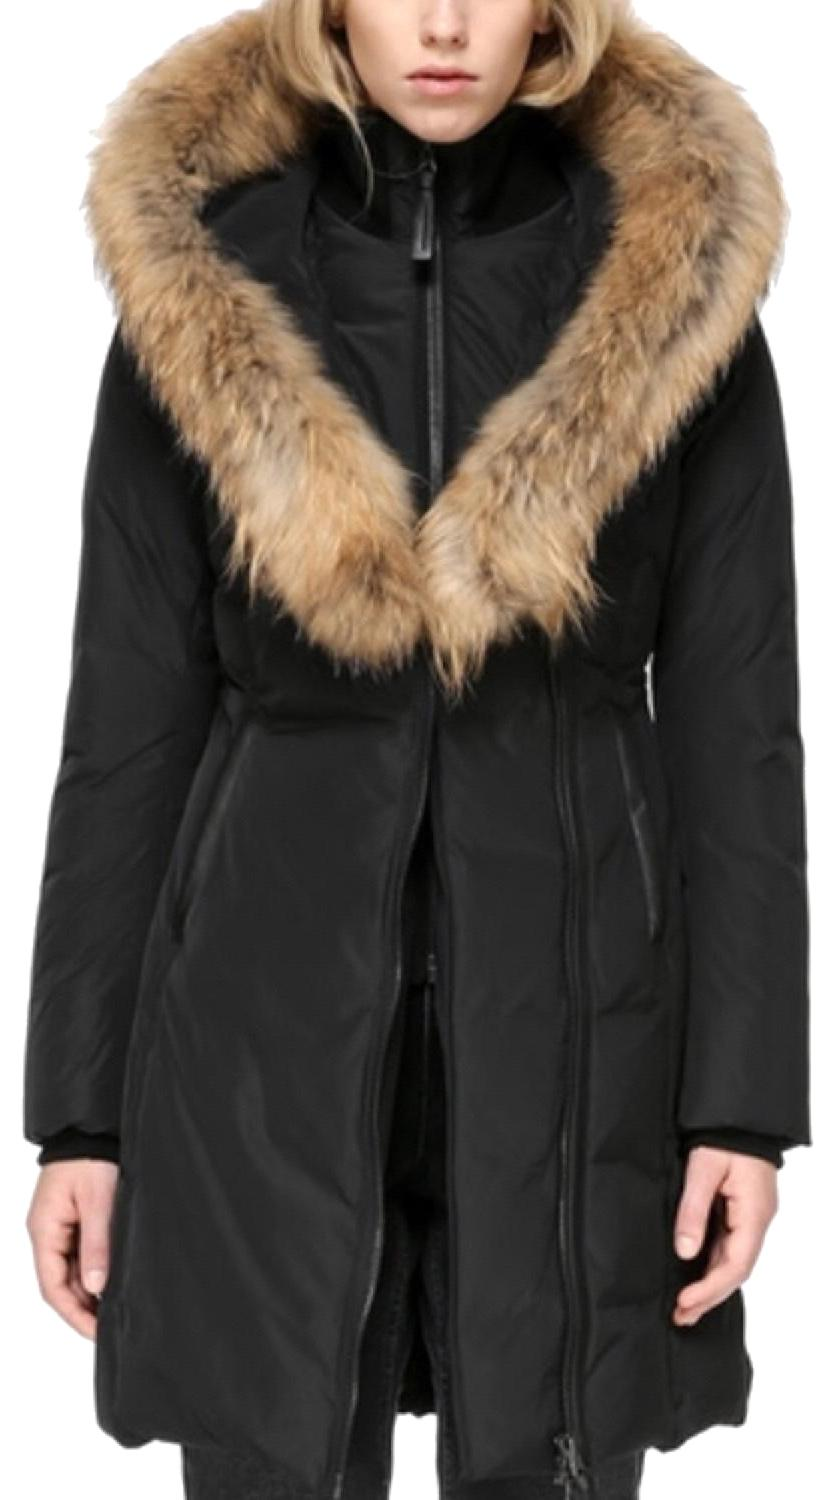 b86d4511e1dc ... best price mackage moncler canada goose coat 0099e 6462f clearance mackage  kay lavis fur trim womens puffer down coat ...